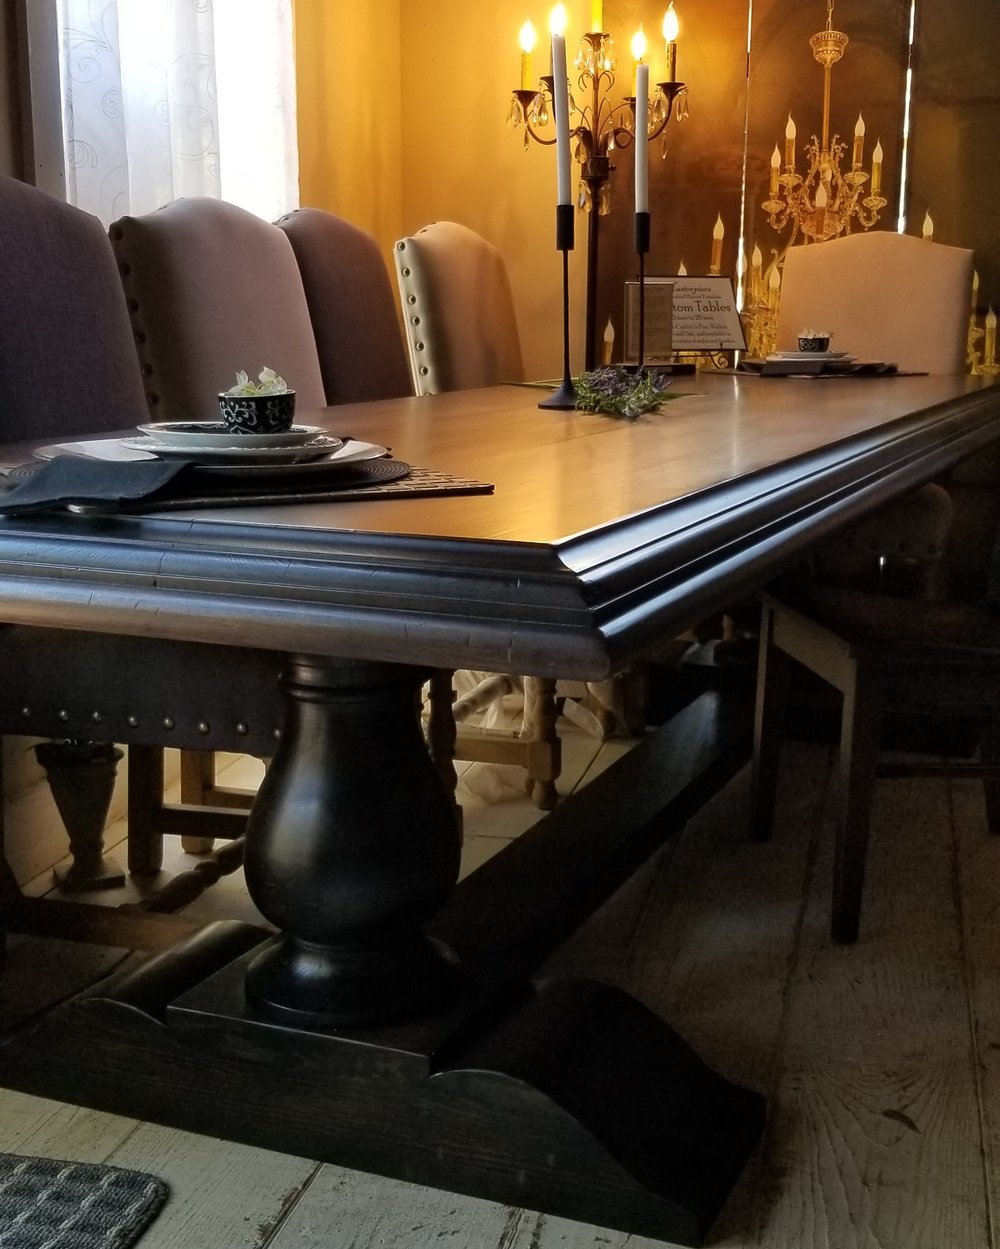 Baron's Table-The Baron's Table is another Masterpiece trestle table design. This table offers a classic-look ornate edge and is available in a selection of wood varietals and stain or paint colors.Pricing Starts at $2,695 for 7'. -